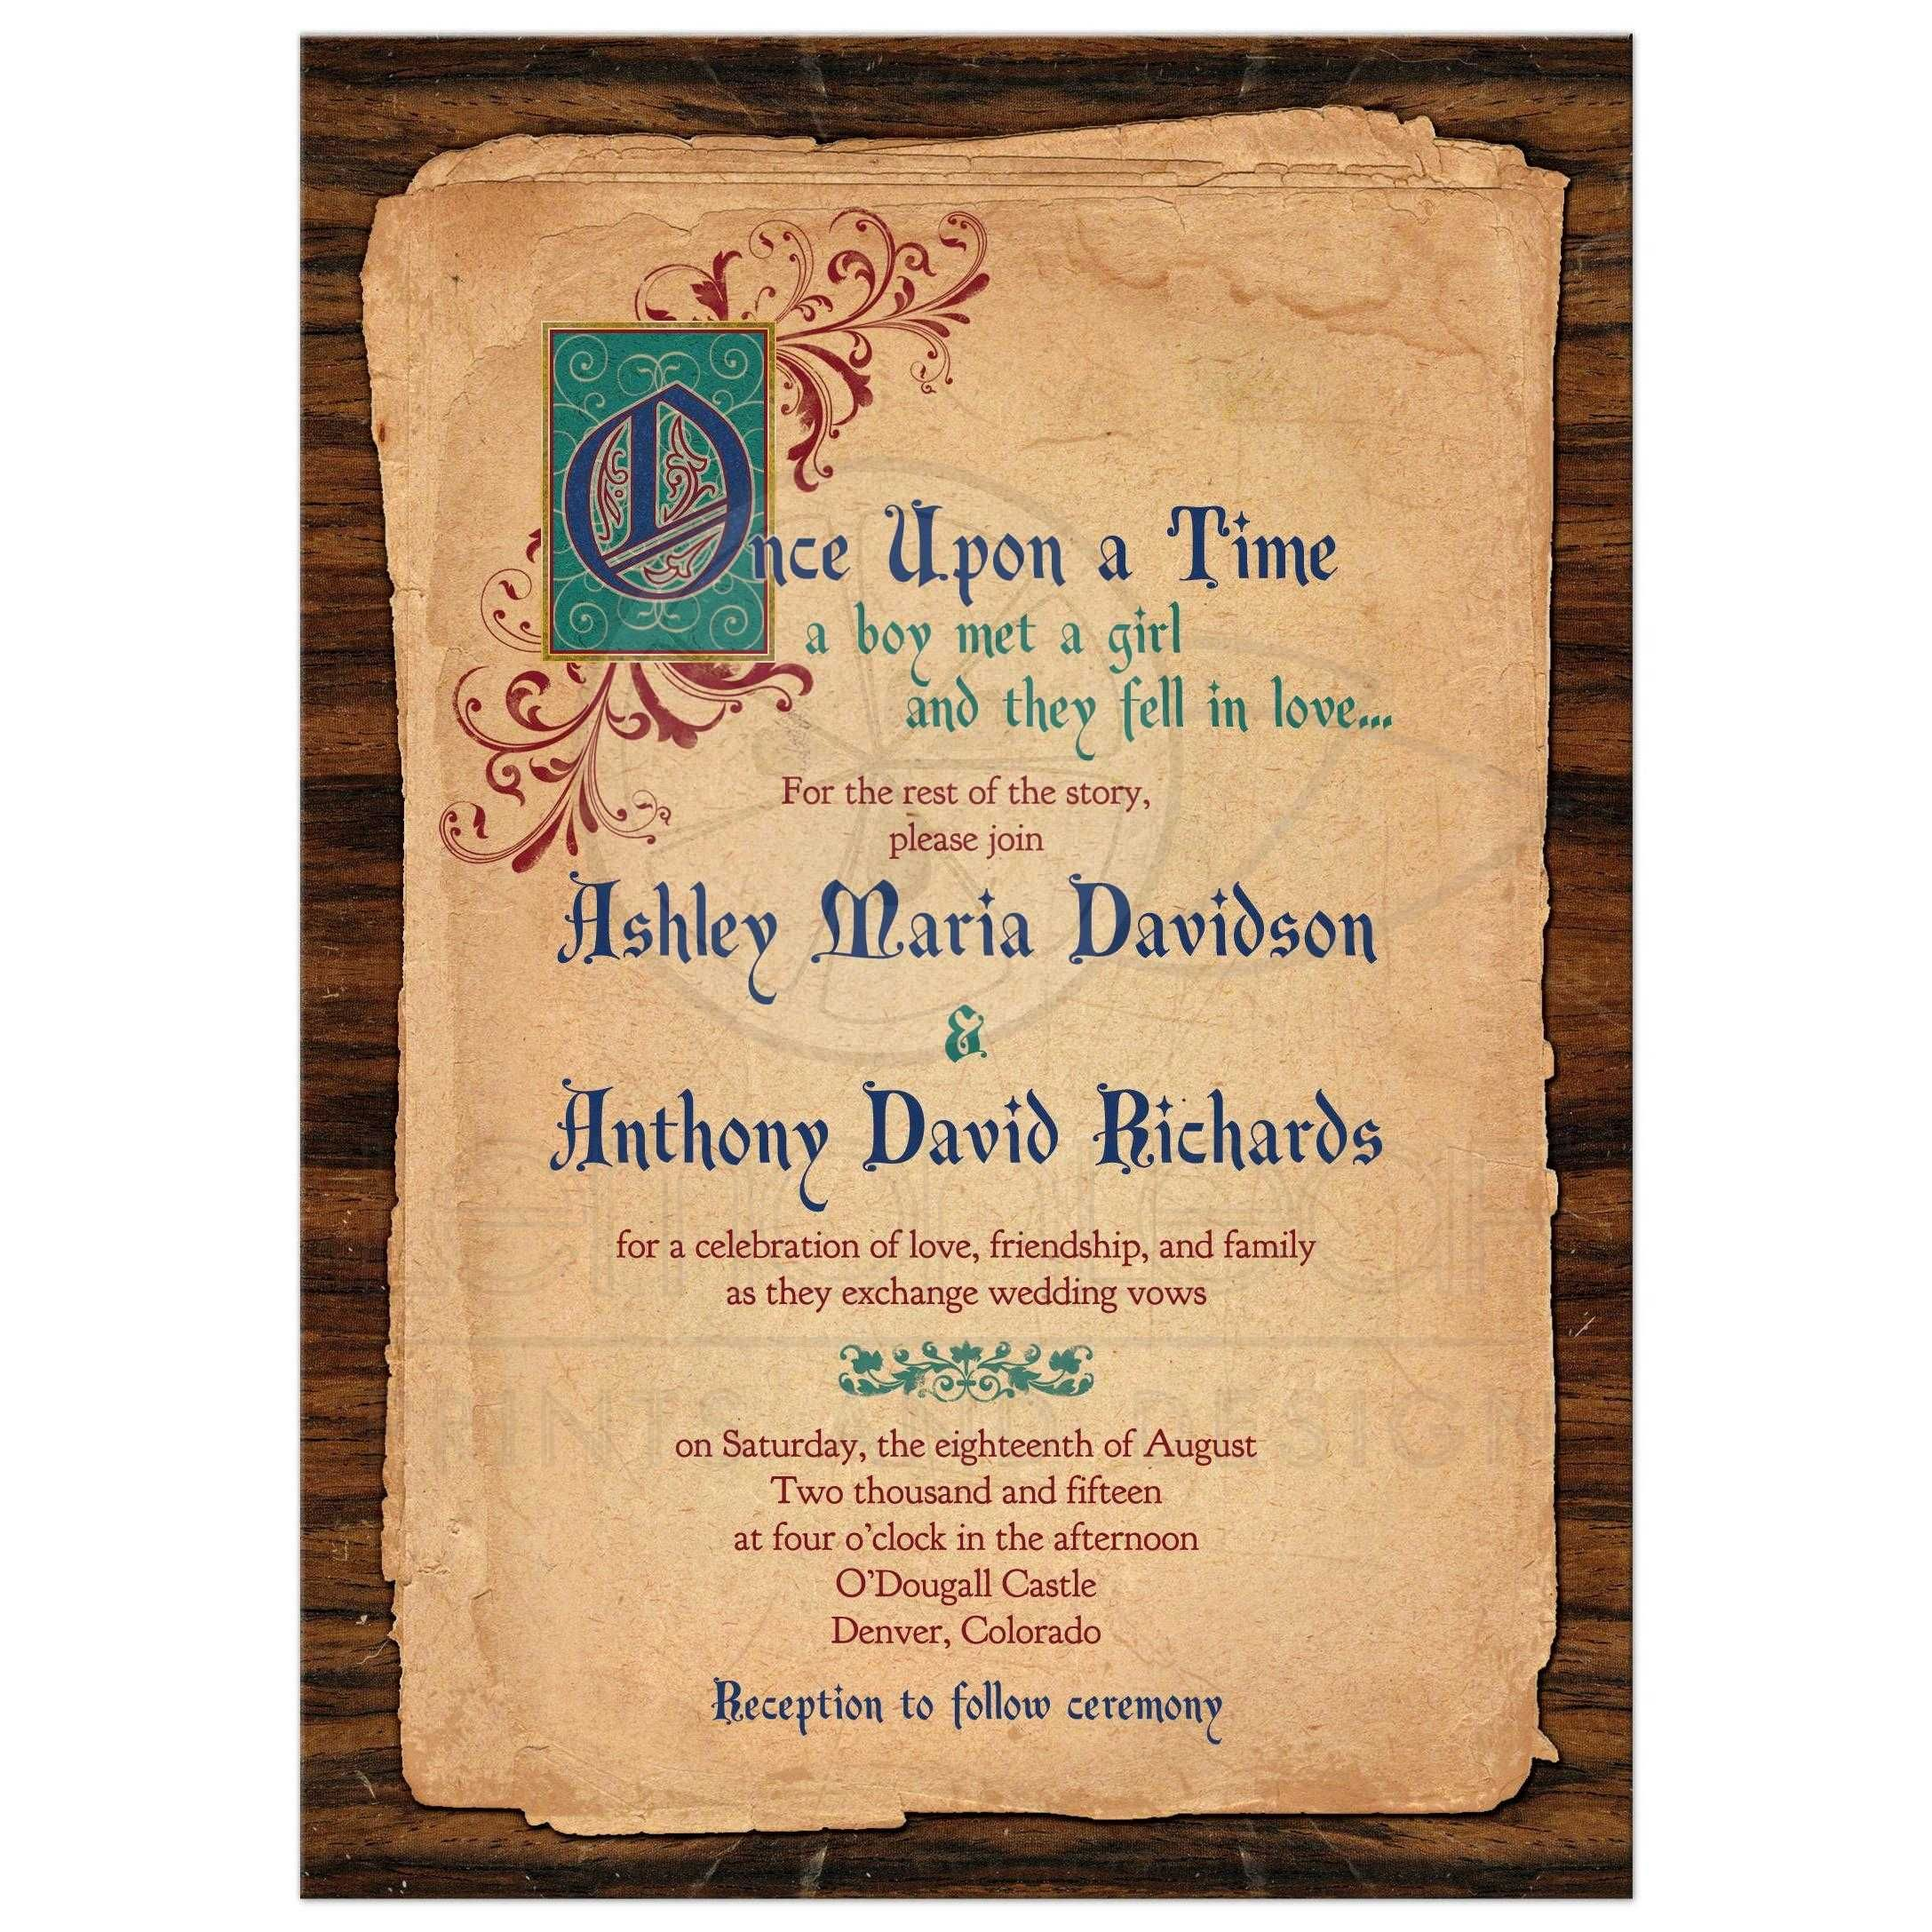 fairy tale wedding invitation medieval once upon a time - Medieval Wedding Invitations